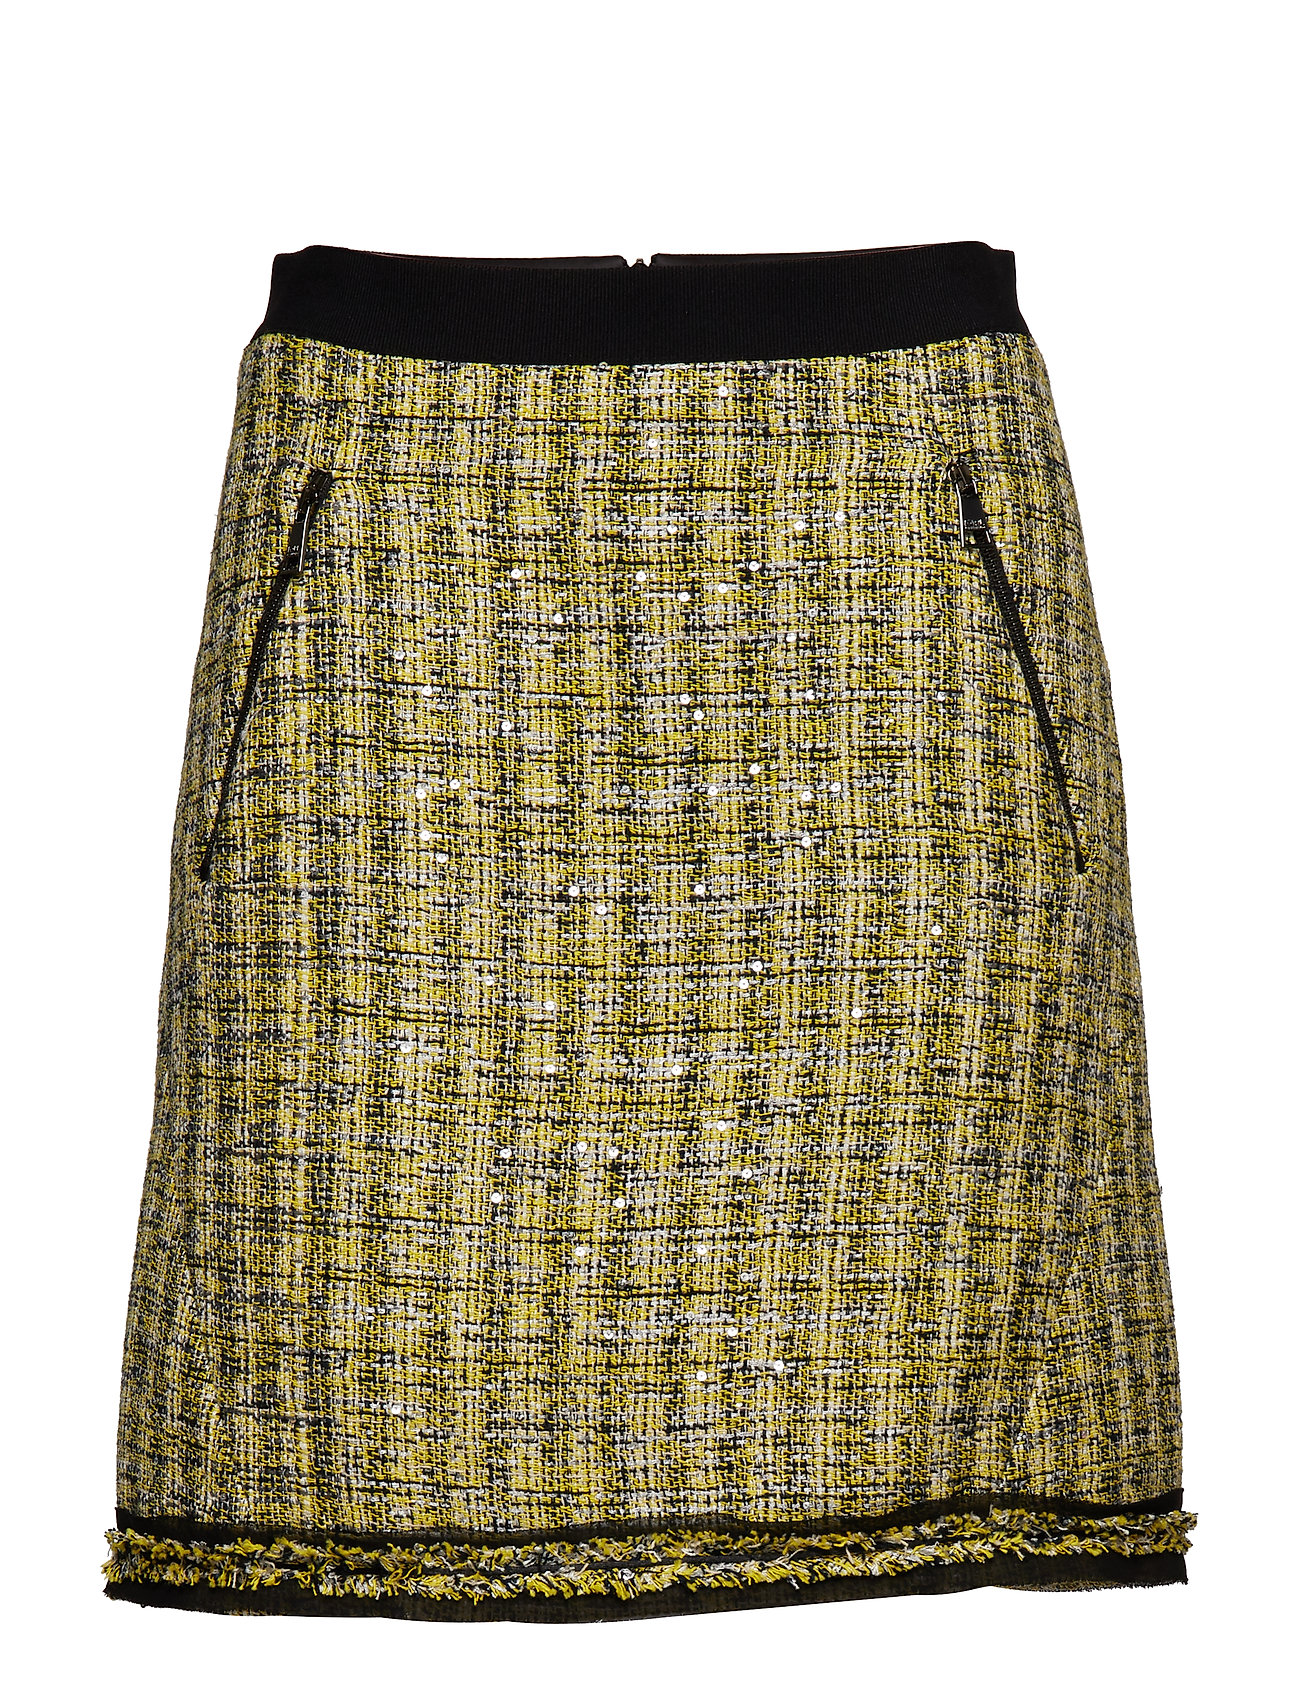 Karl Lagerfeld A-Line Boucle Skirt